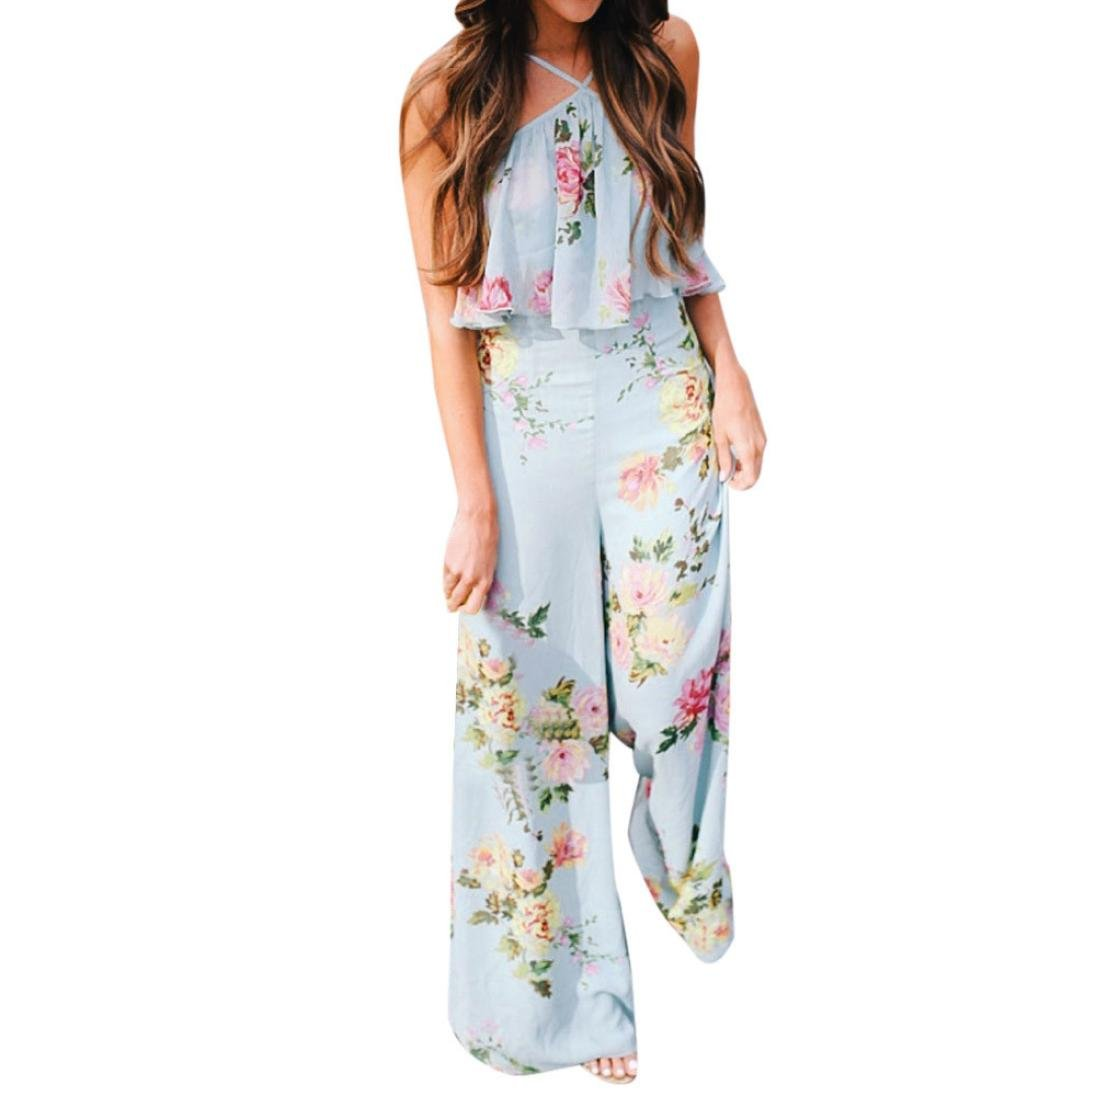 dd384678457c Amazon.com  Women s Boho Floral Halter Neck Sleeveless High Waisted Chiffon  Wide Pants Jumpsuits Rompers  Clothing